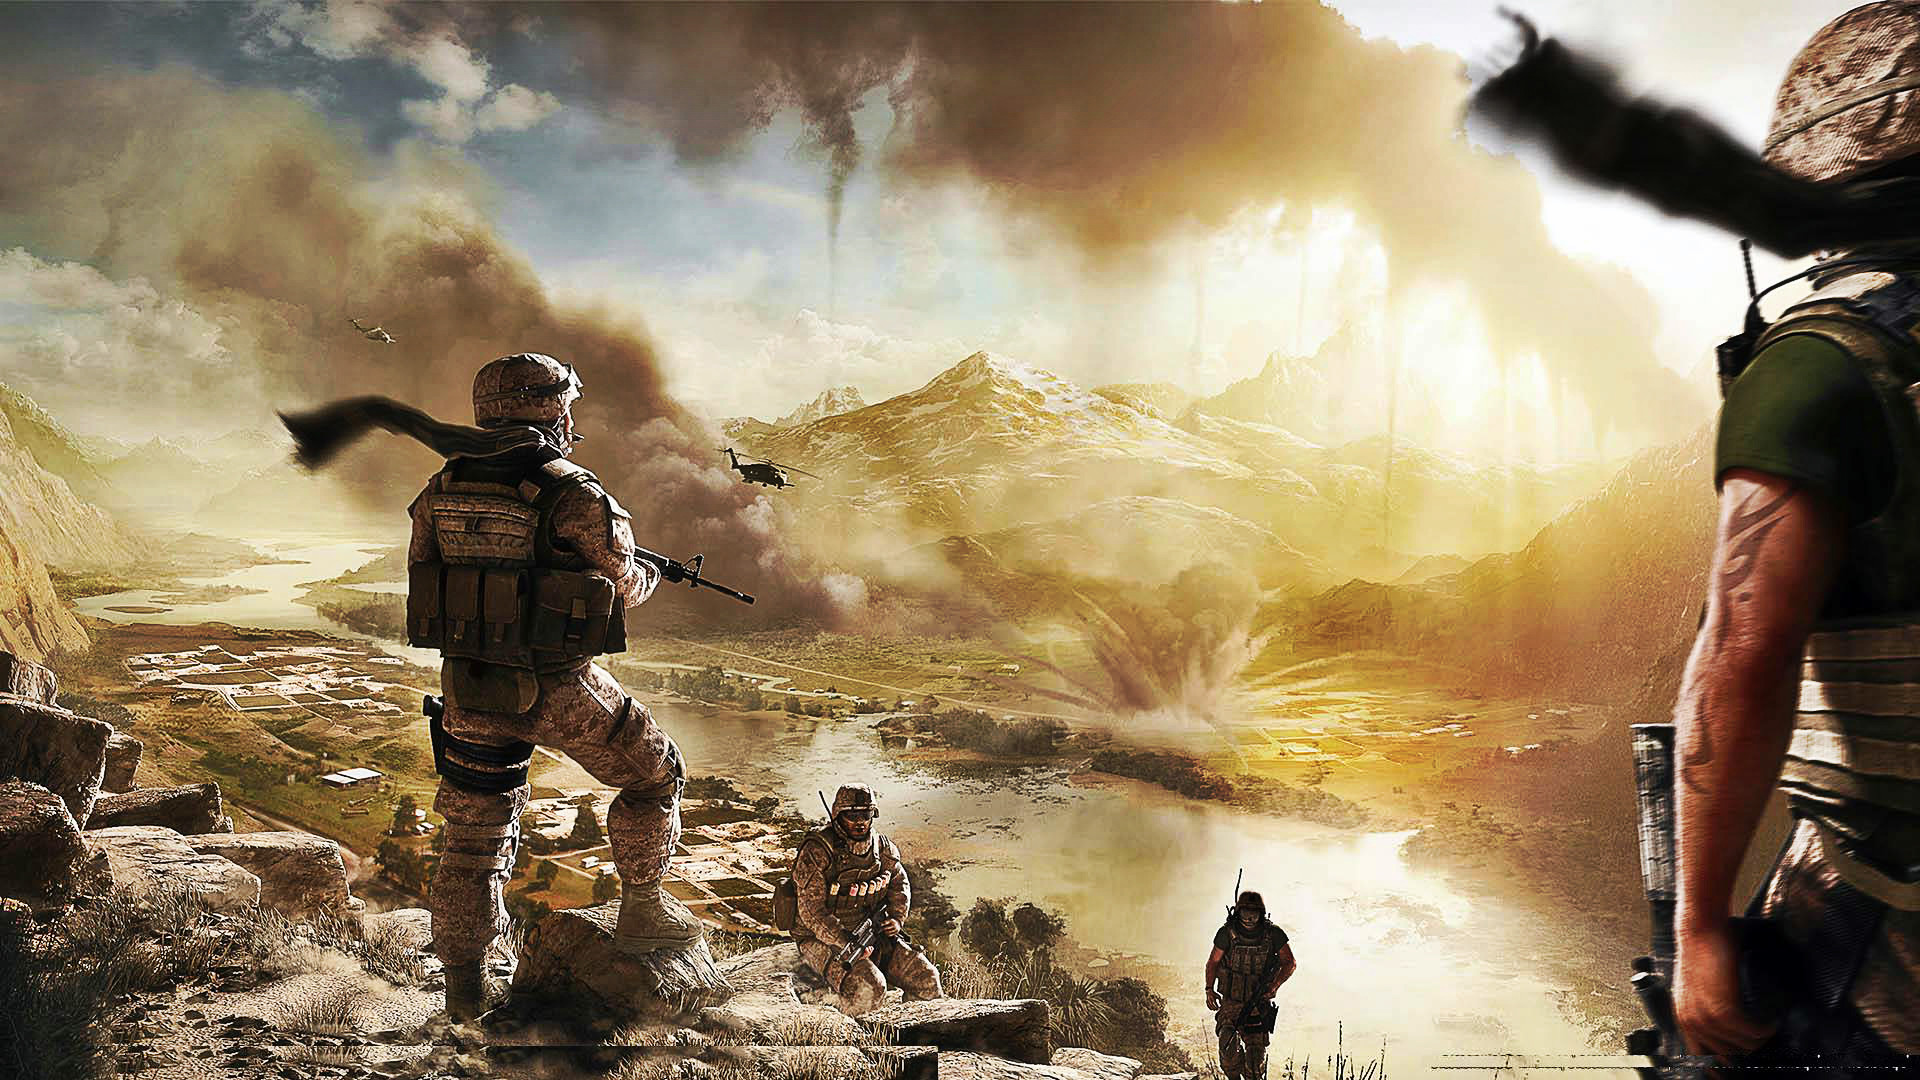 1920x1080 Us marine corps widescreen Wallpaper